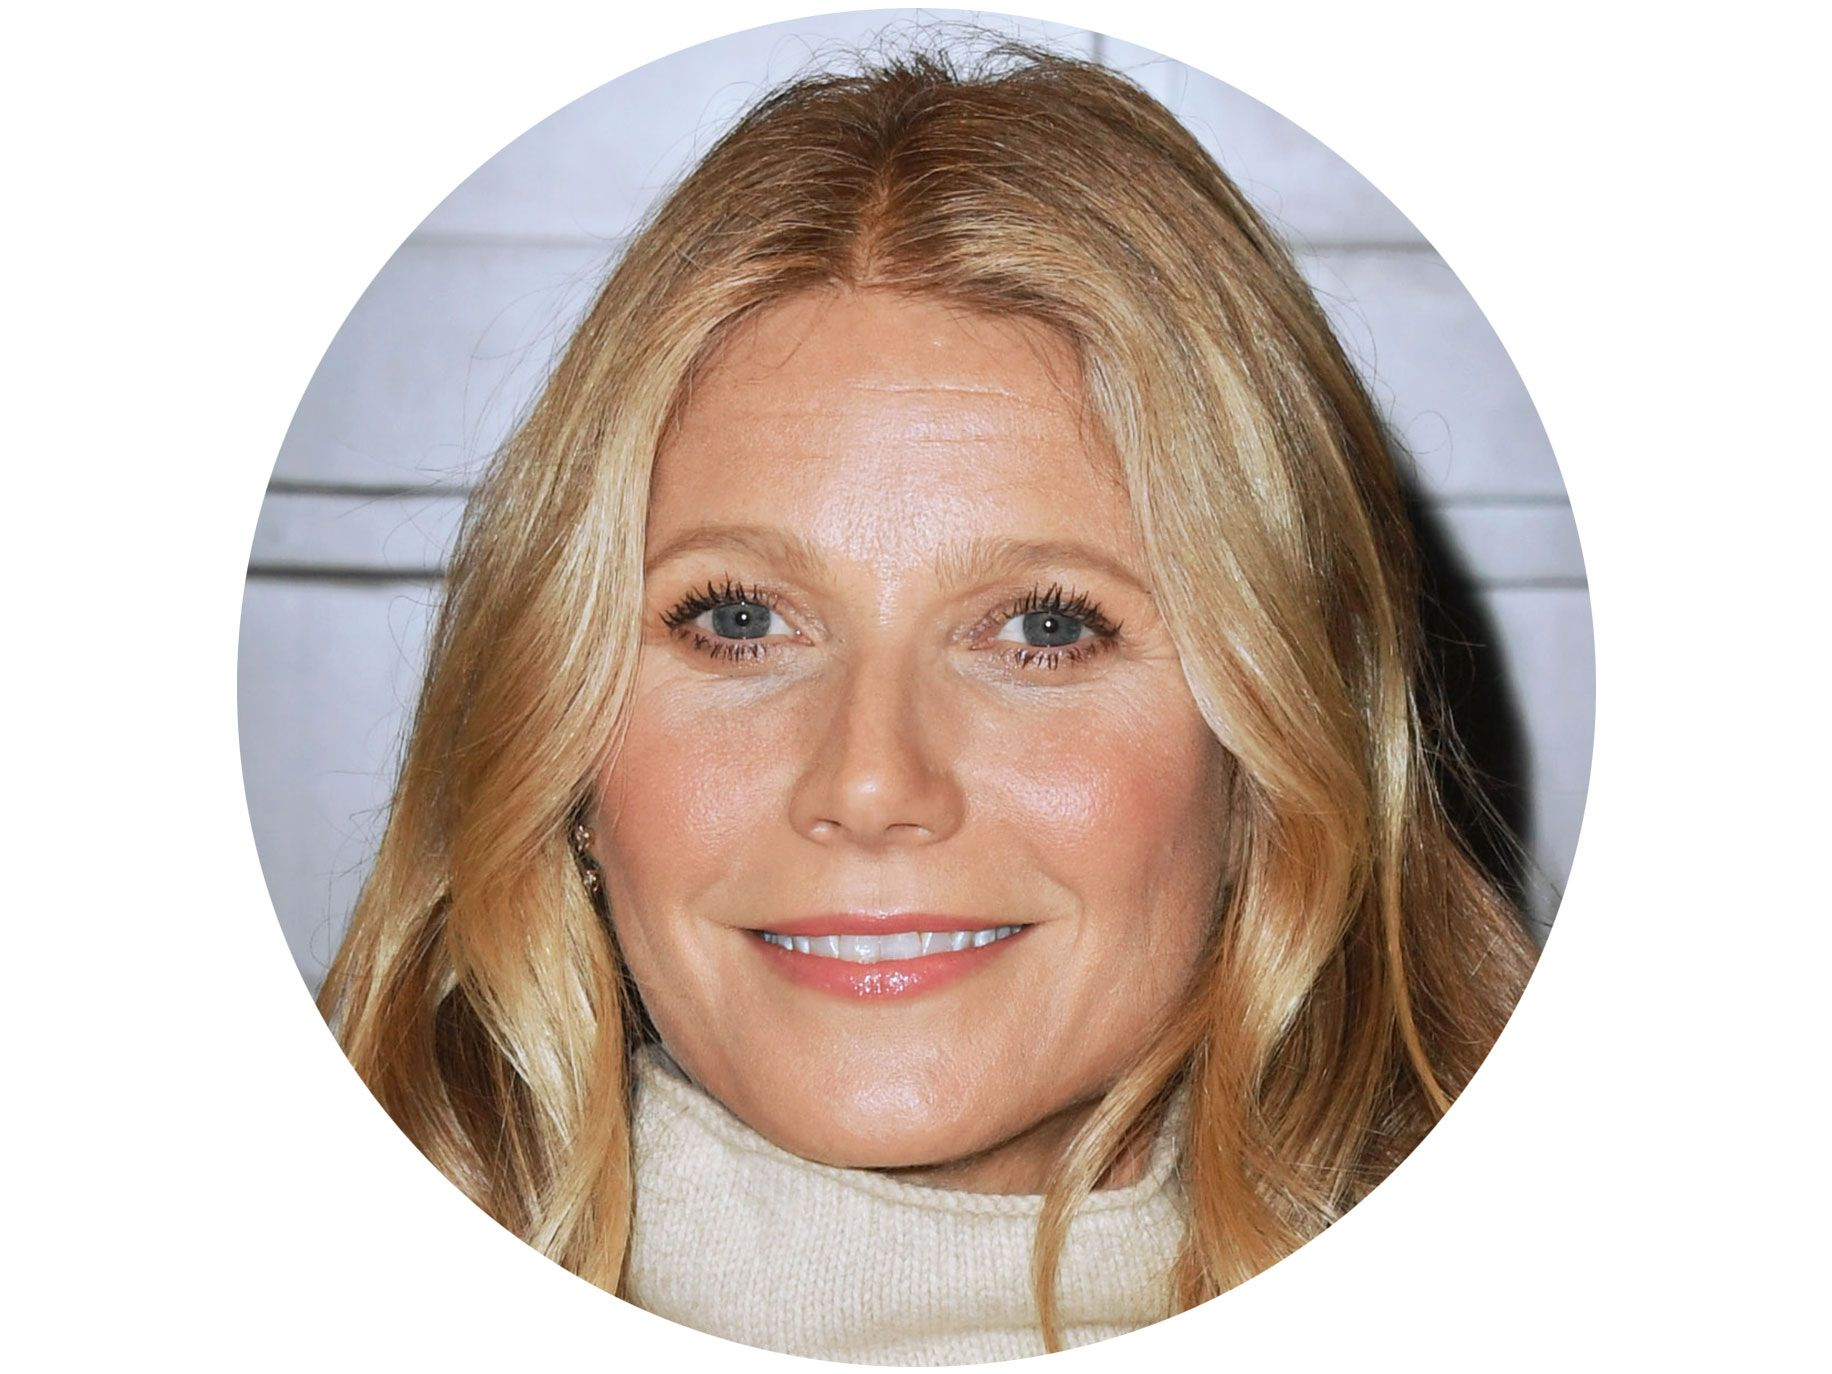 "GWYNETH PALTROW ON CHINOIS ON MAIN Academy Award–winning actor and founder of Goop: ""I have been going to Chinois on Main since I was about 12 years old. My father was a foodie, immersed in the early days of the California cuisine food scene, and Chinois was one of our regular family spots. I now go with my own family regularly, and the restaurant remains one of my favorite places in the city."""